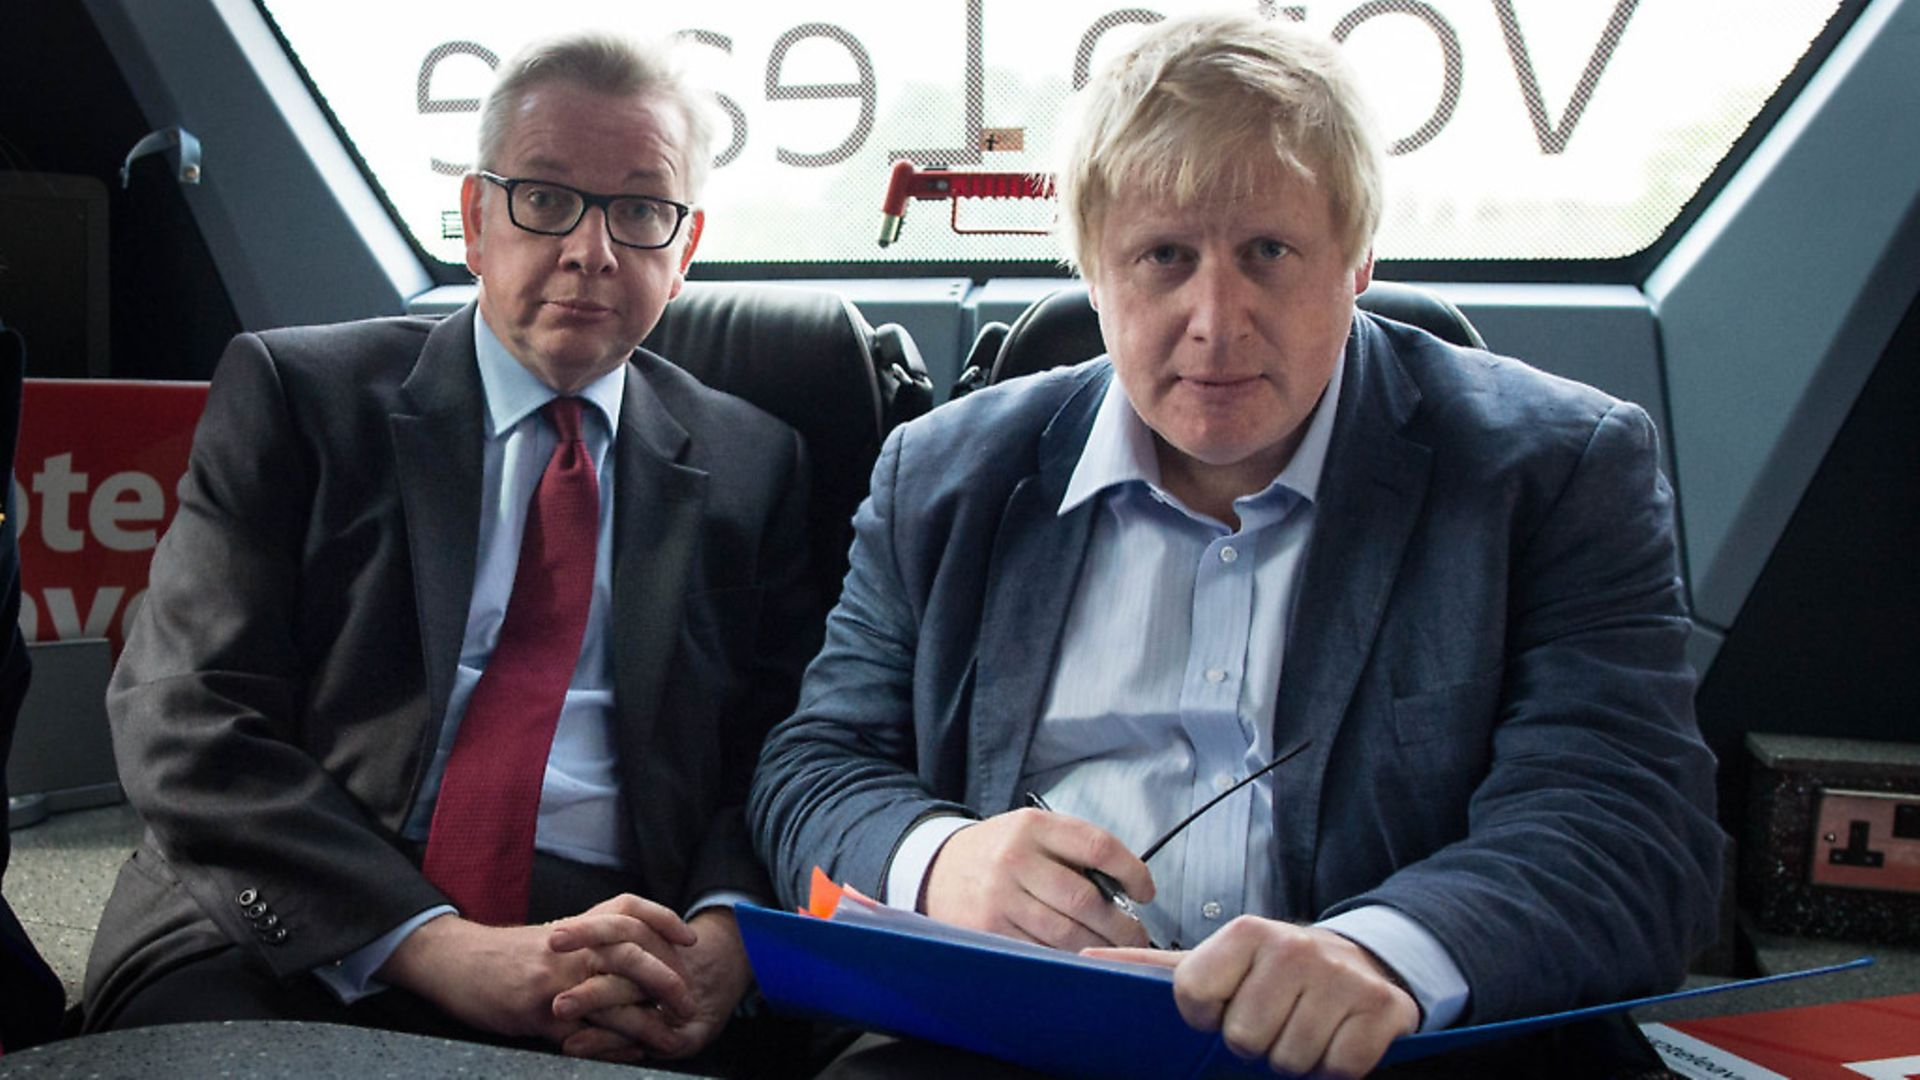 Michael Gove and Boris Johnson, pictured on a Leave campaign bus, make up two thirds of the Sunday Times political editor, Tim Shipman's, hypothetical Tory dream team. Photo: PA Wire/Stefan Rousseau - Credit: PA Wire/PA Images